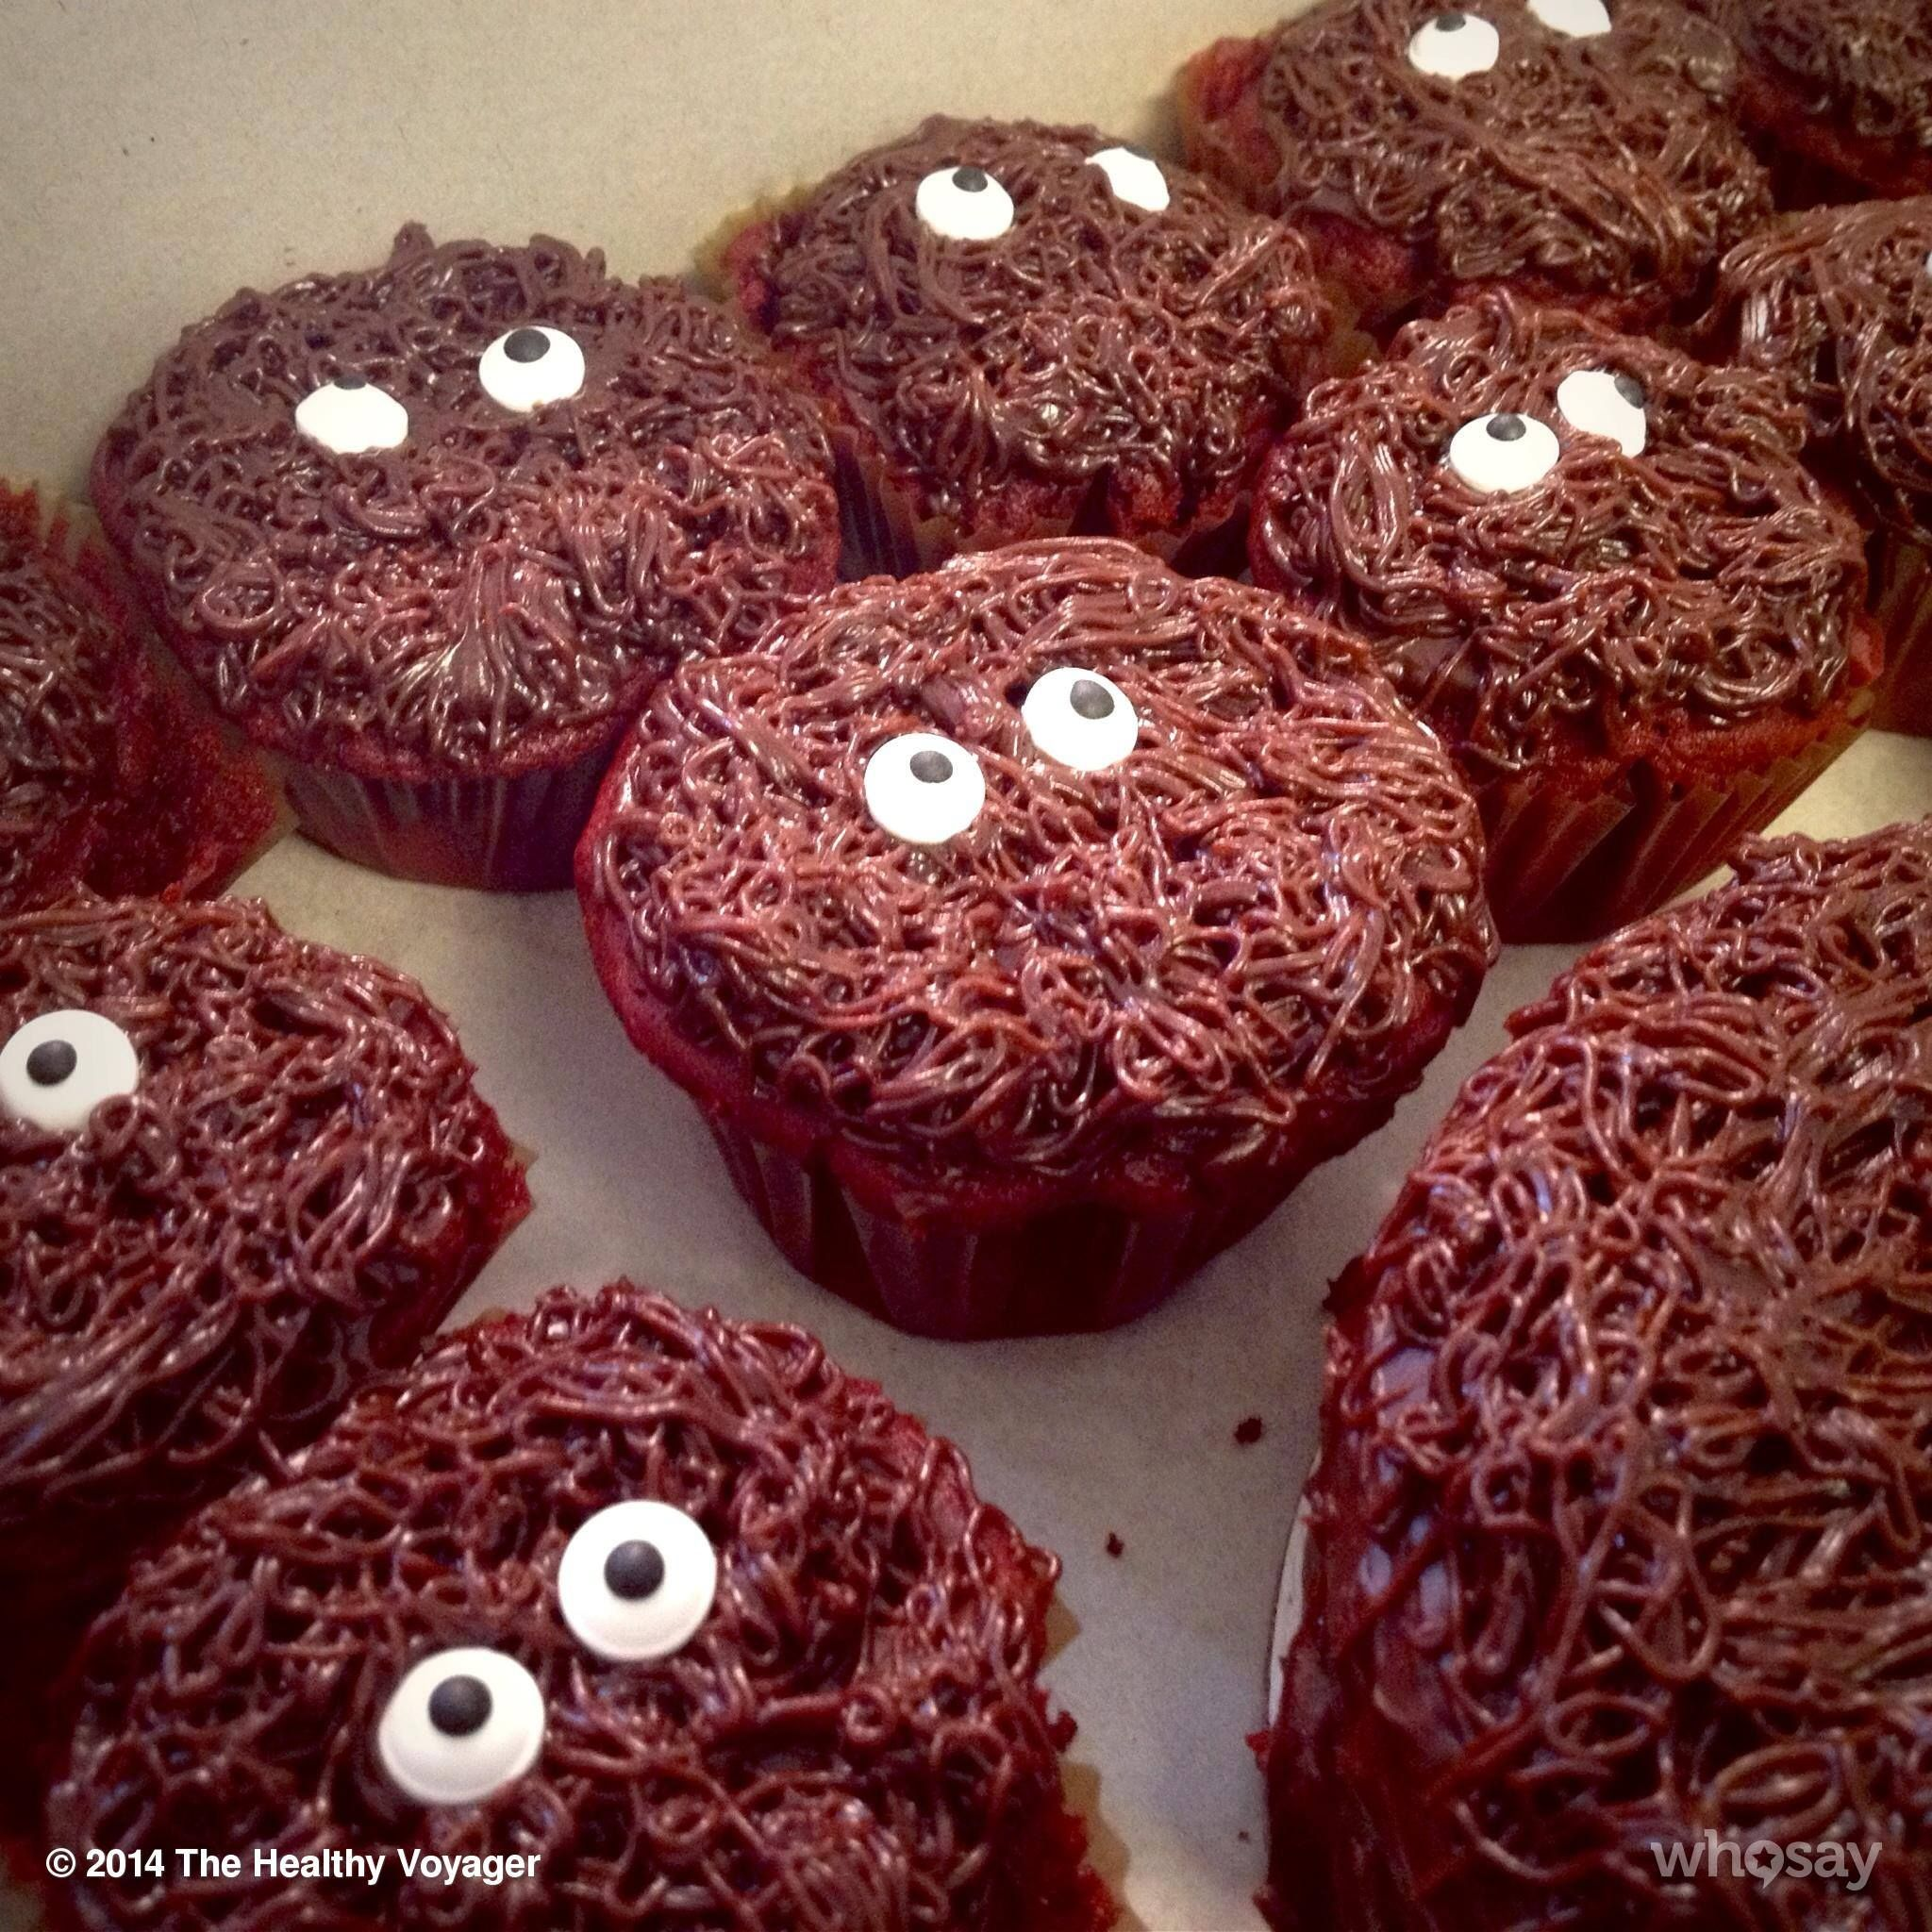 Vegansnackattack Vegan Bigfoot Cupcakes Healthyvoyager Com Out Of This World Vegan Recipes Healthy Vegan Snacks Food